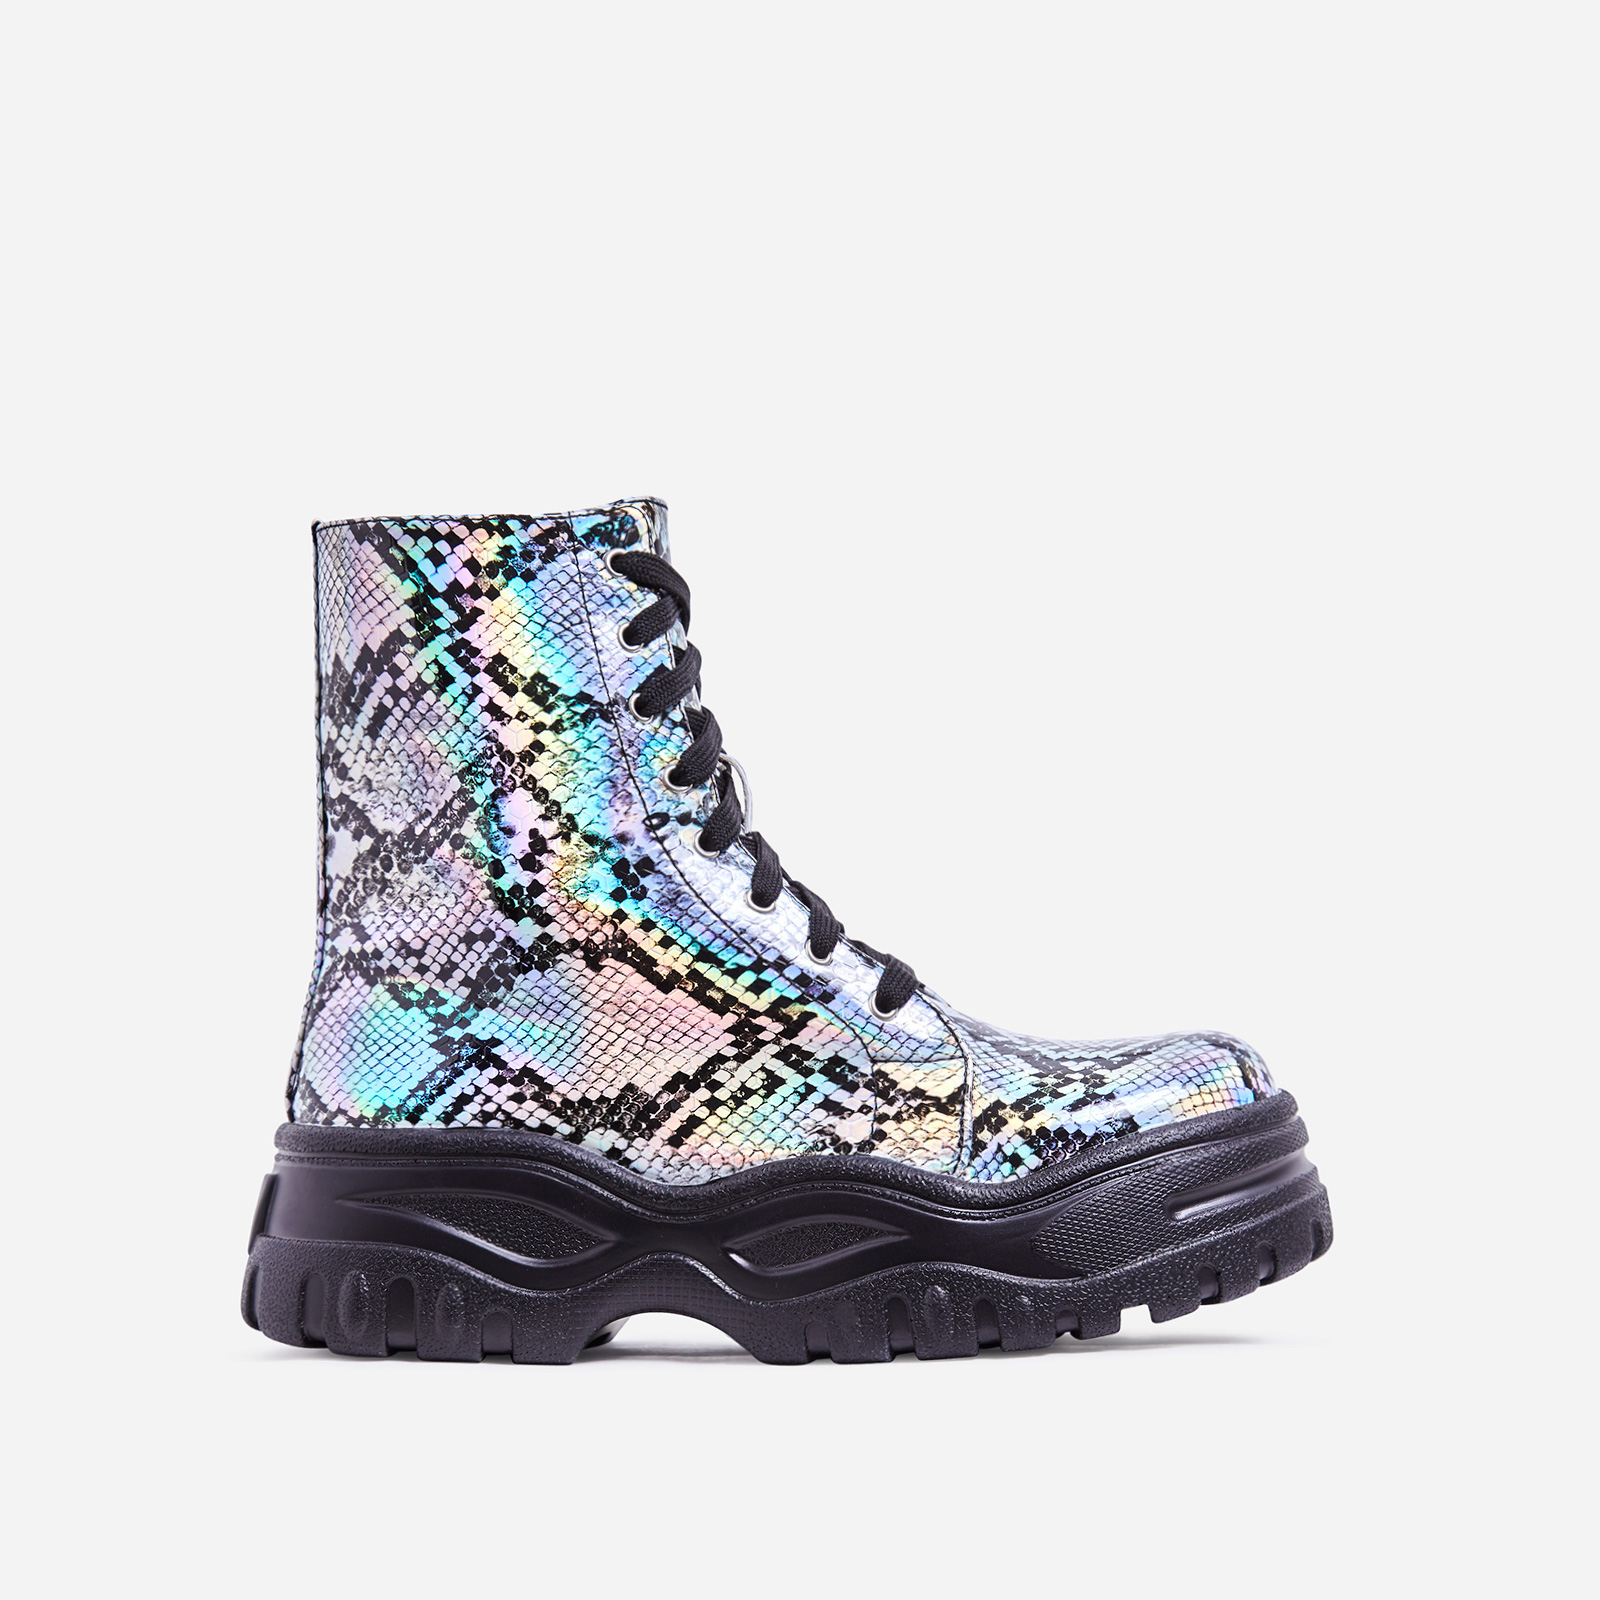 Teaser Chunky Sole Lace Up Ankle Biker Boot In Silver Holographic Snake Print Faux Leather